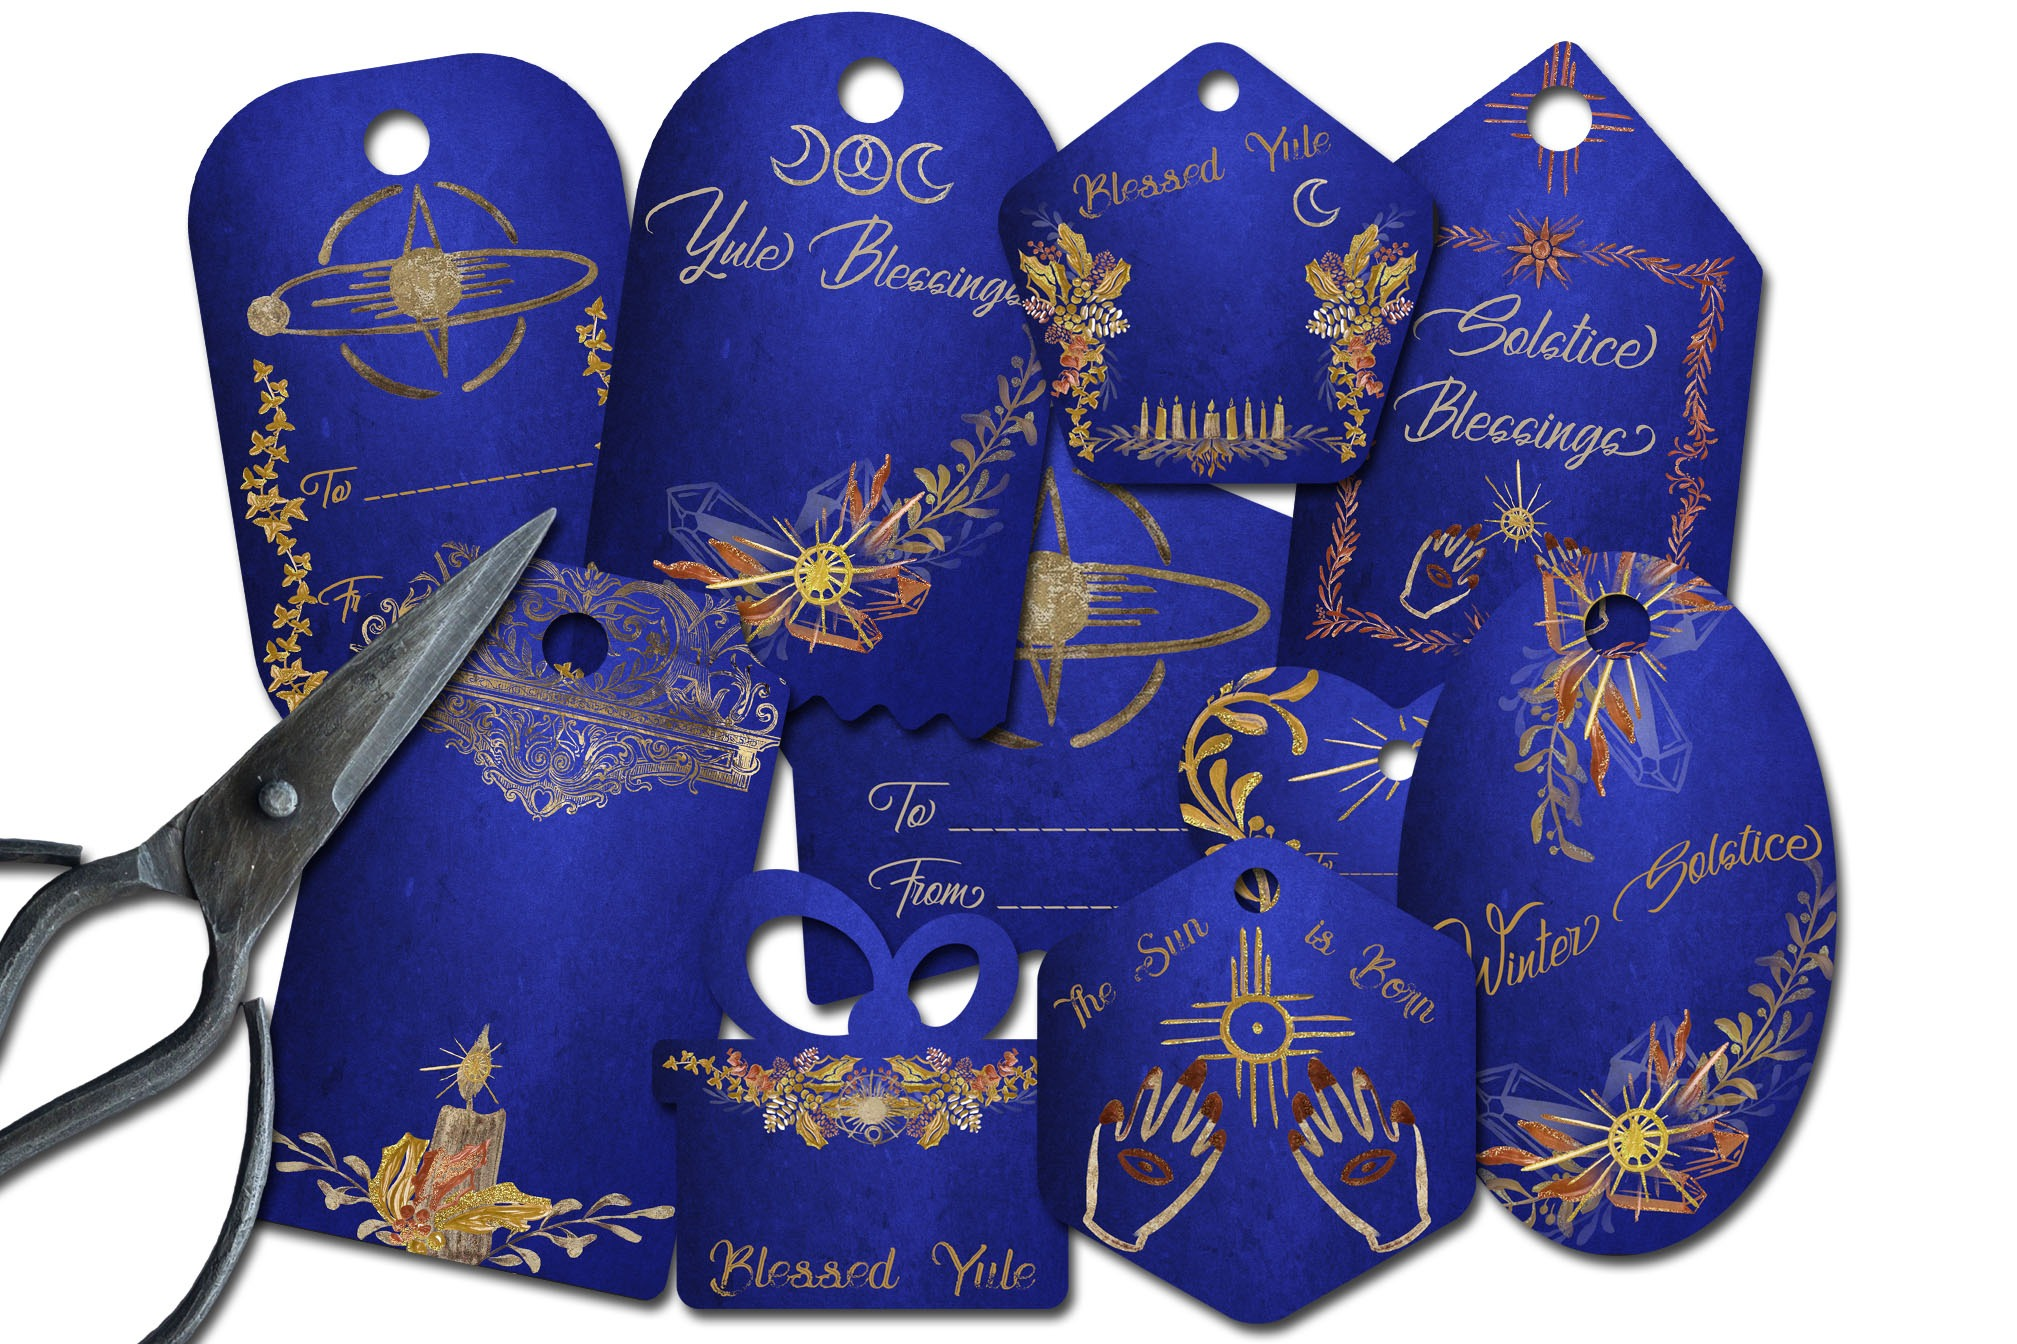 BLUE YULE  *10 Gift Tags*